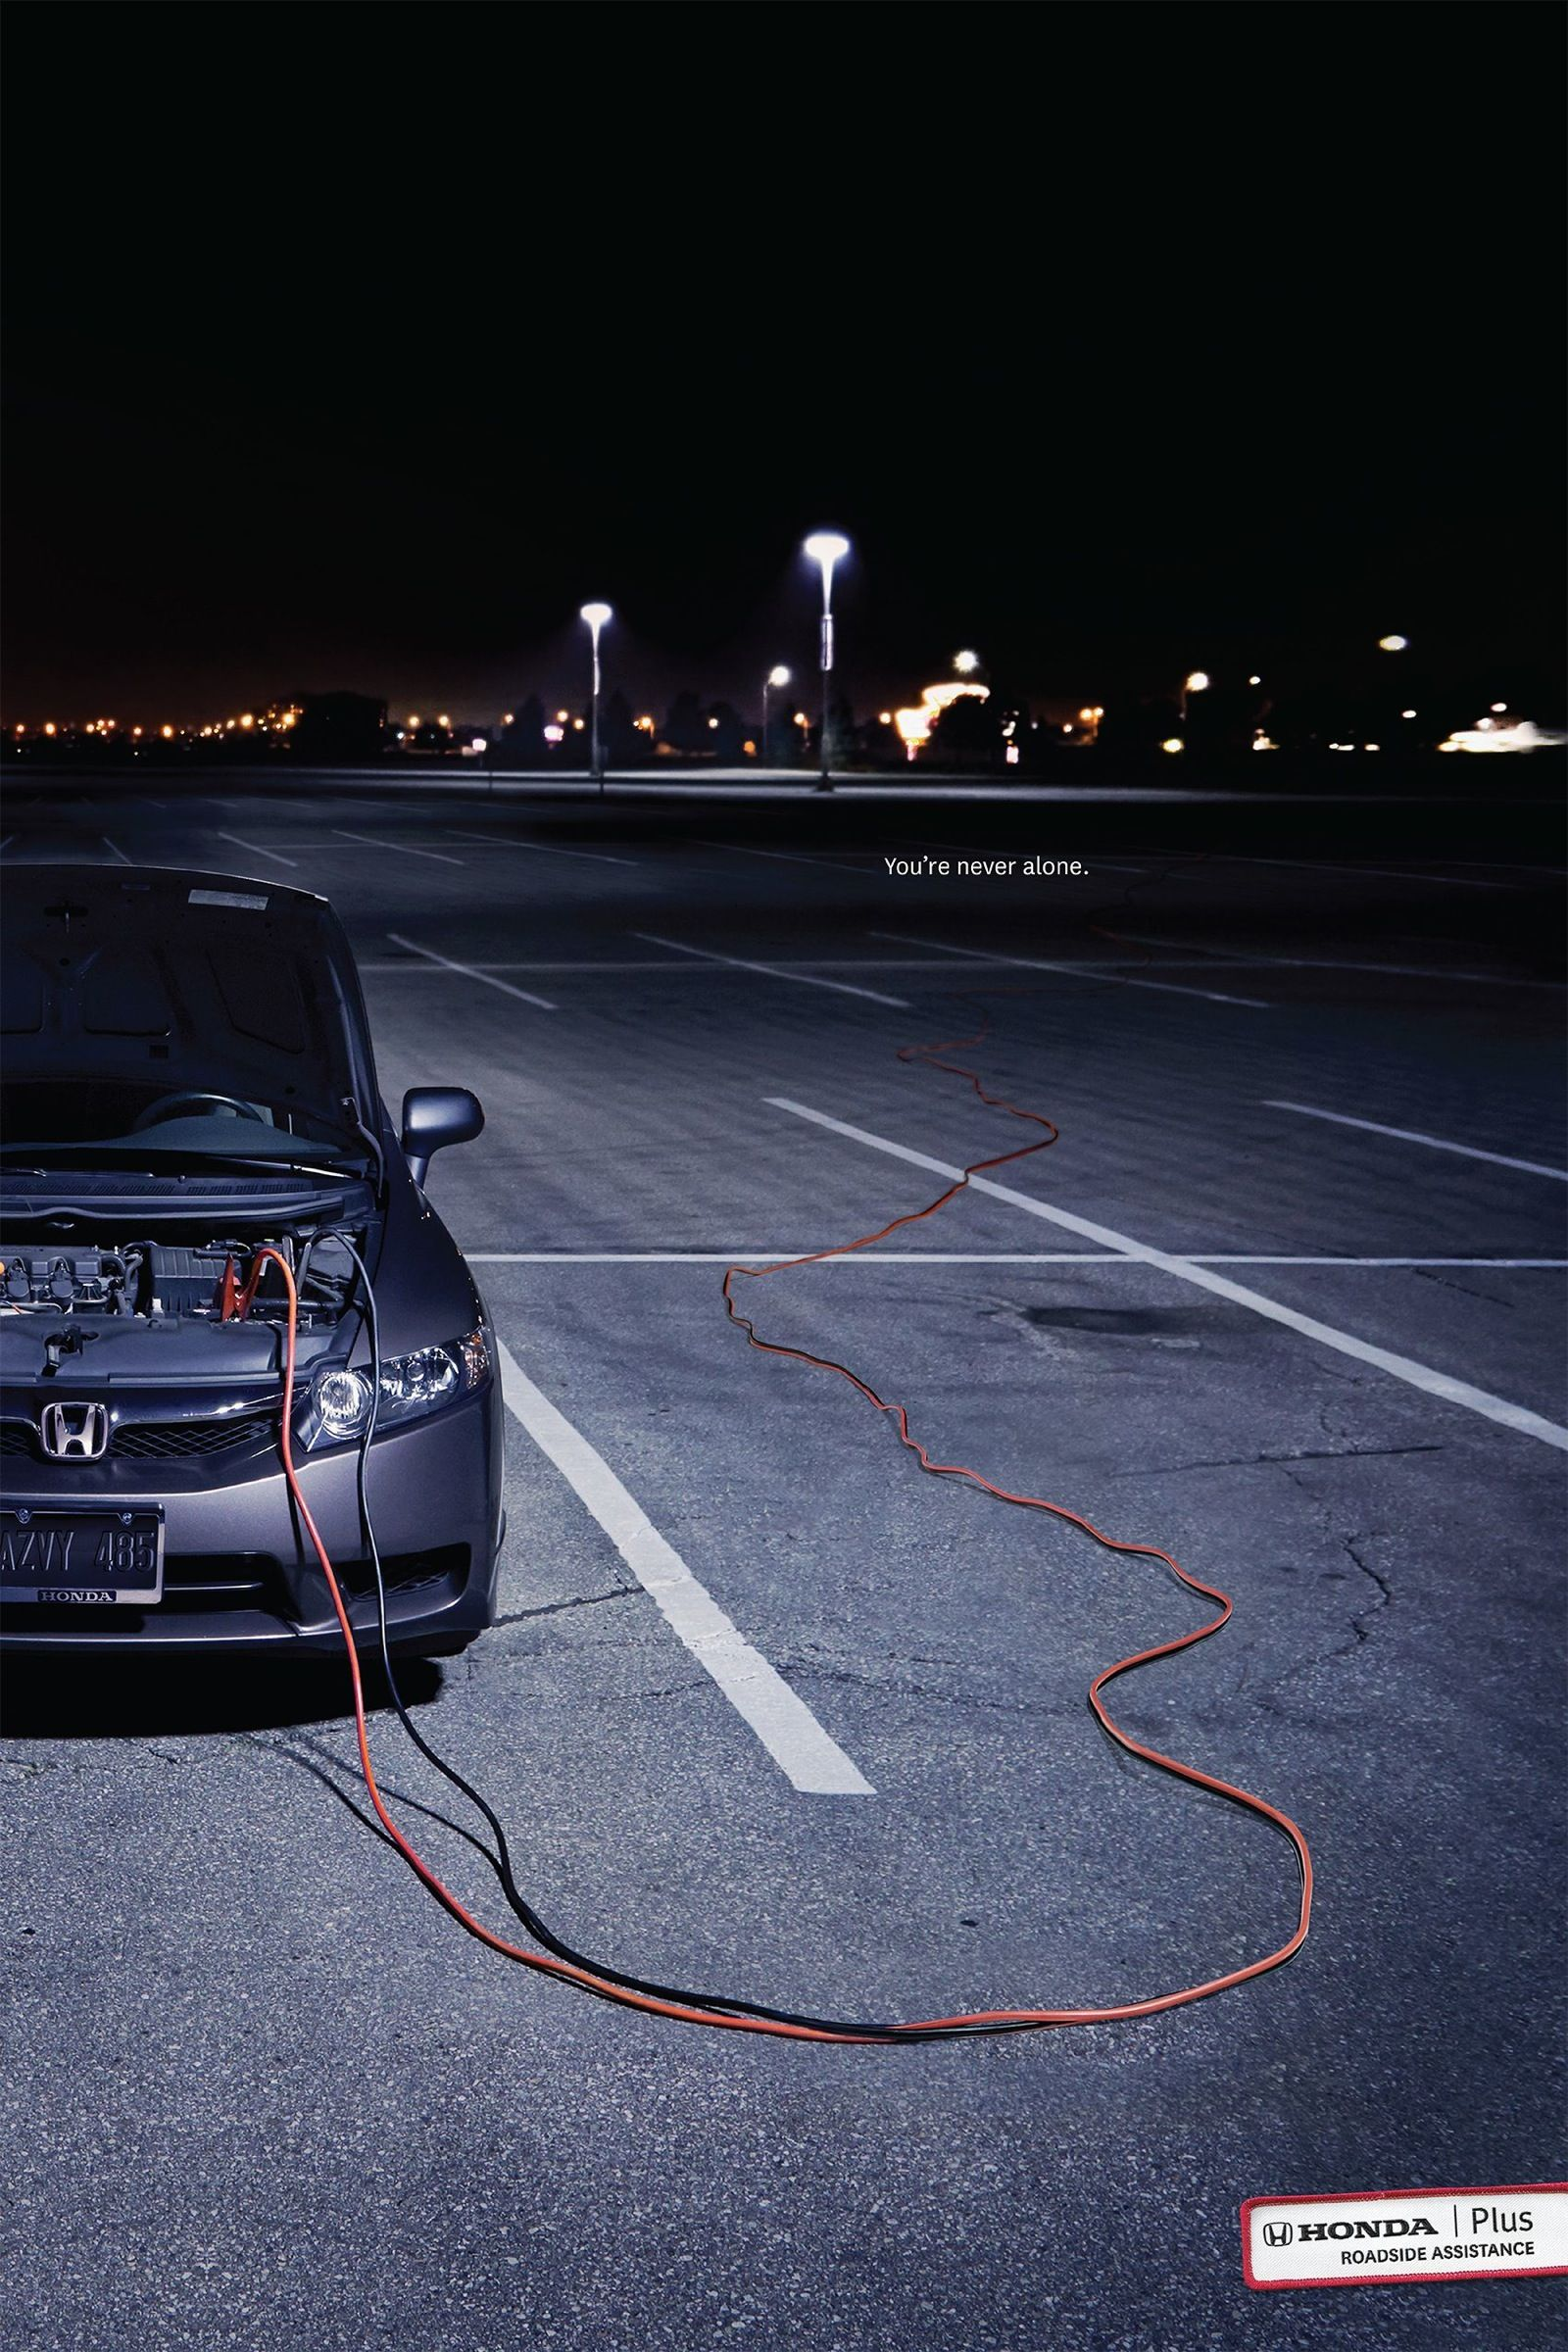 Honda Plus Roadside Assistance Jumper Cable Advertising